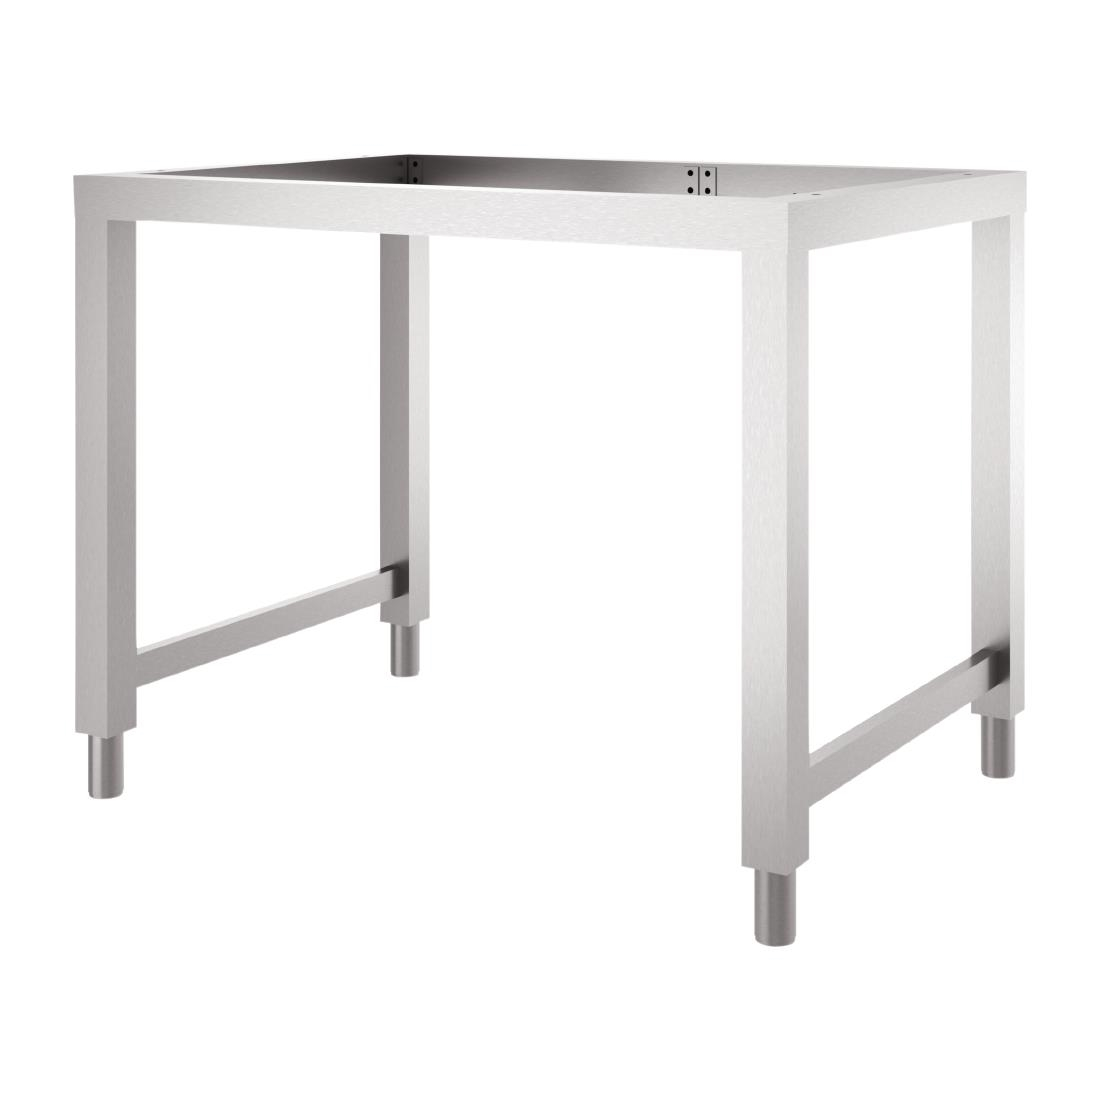 Image of Lainox Open Stainless Steel Stand NSR071